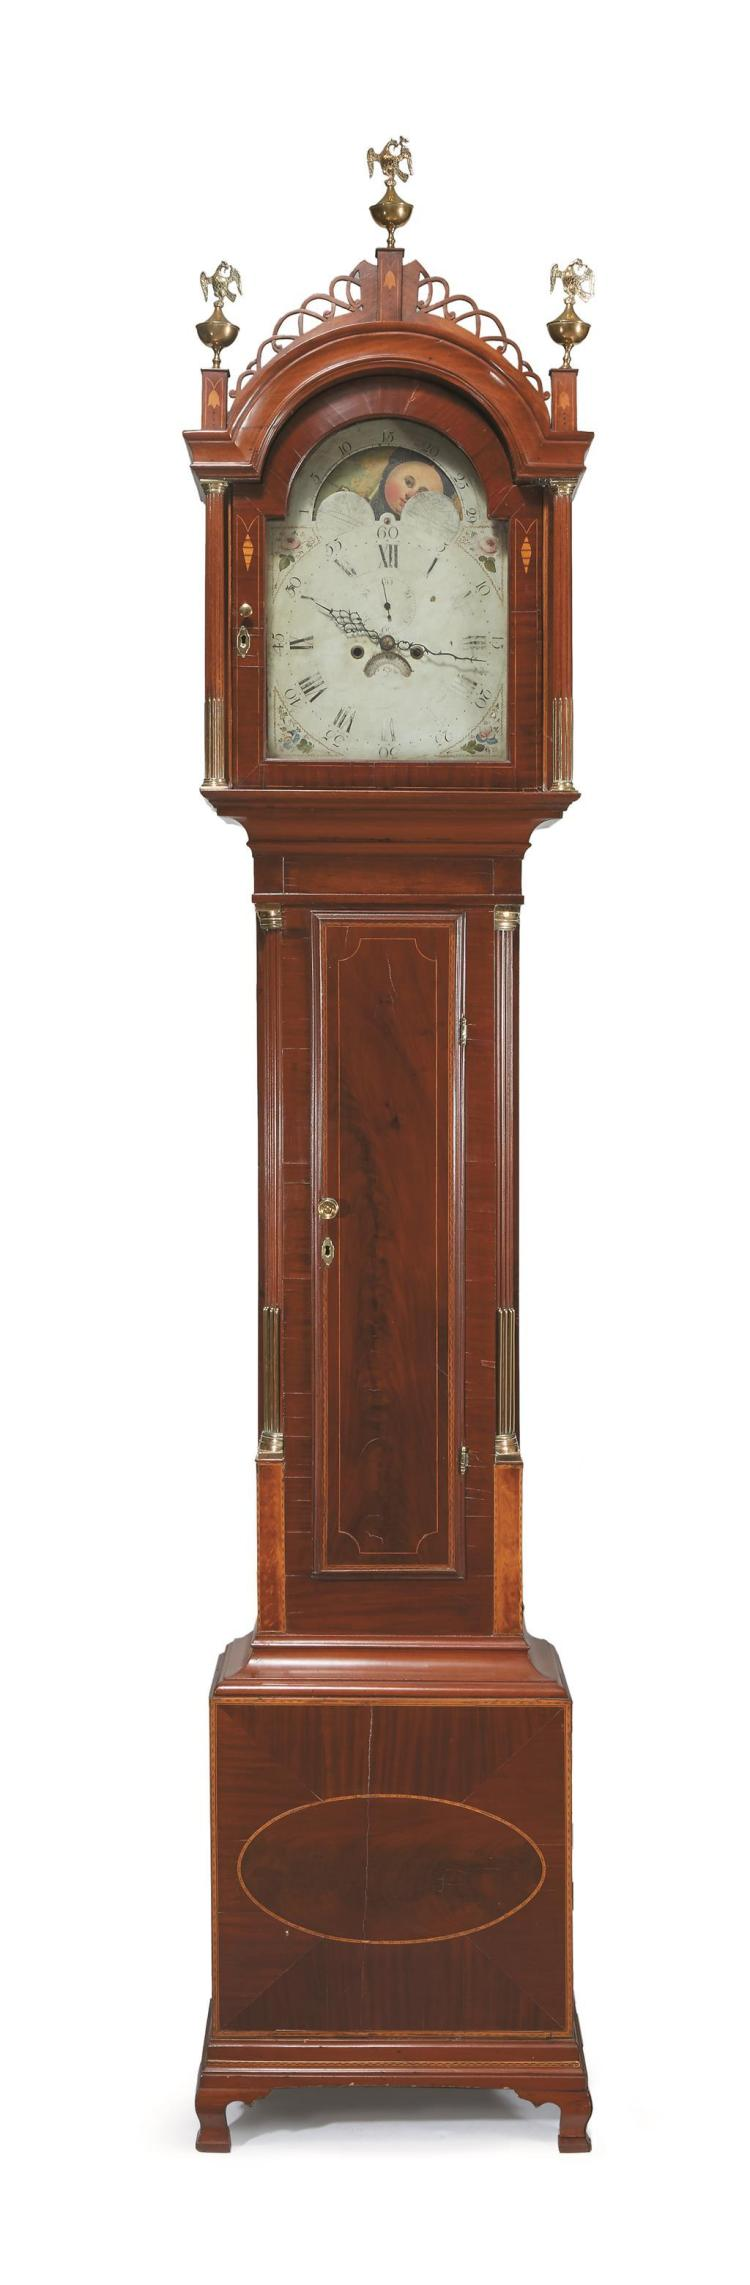 Federal inlaid mahogany tall case clock, early 19th century